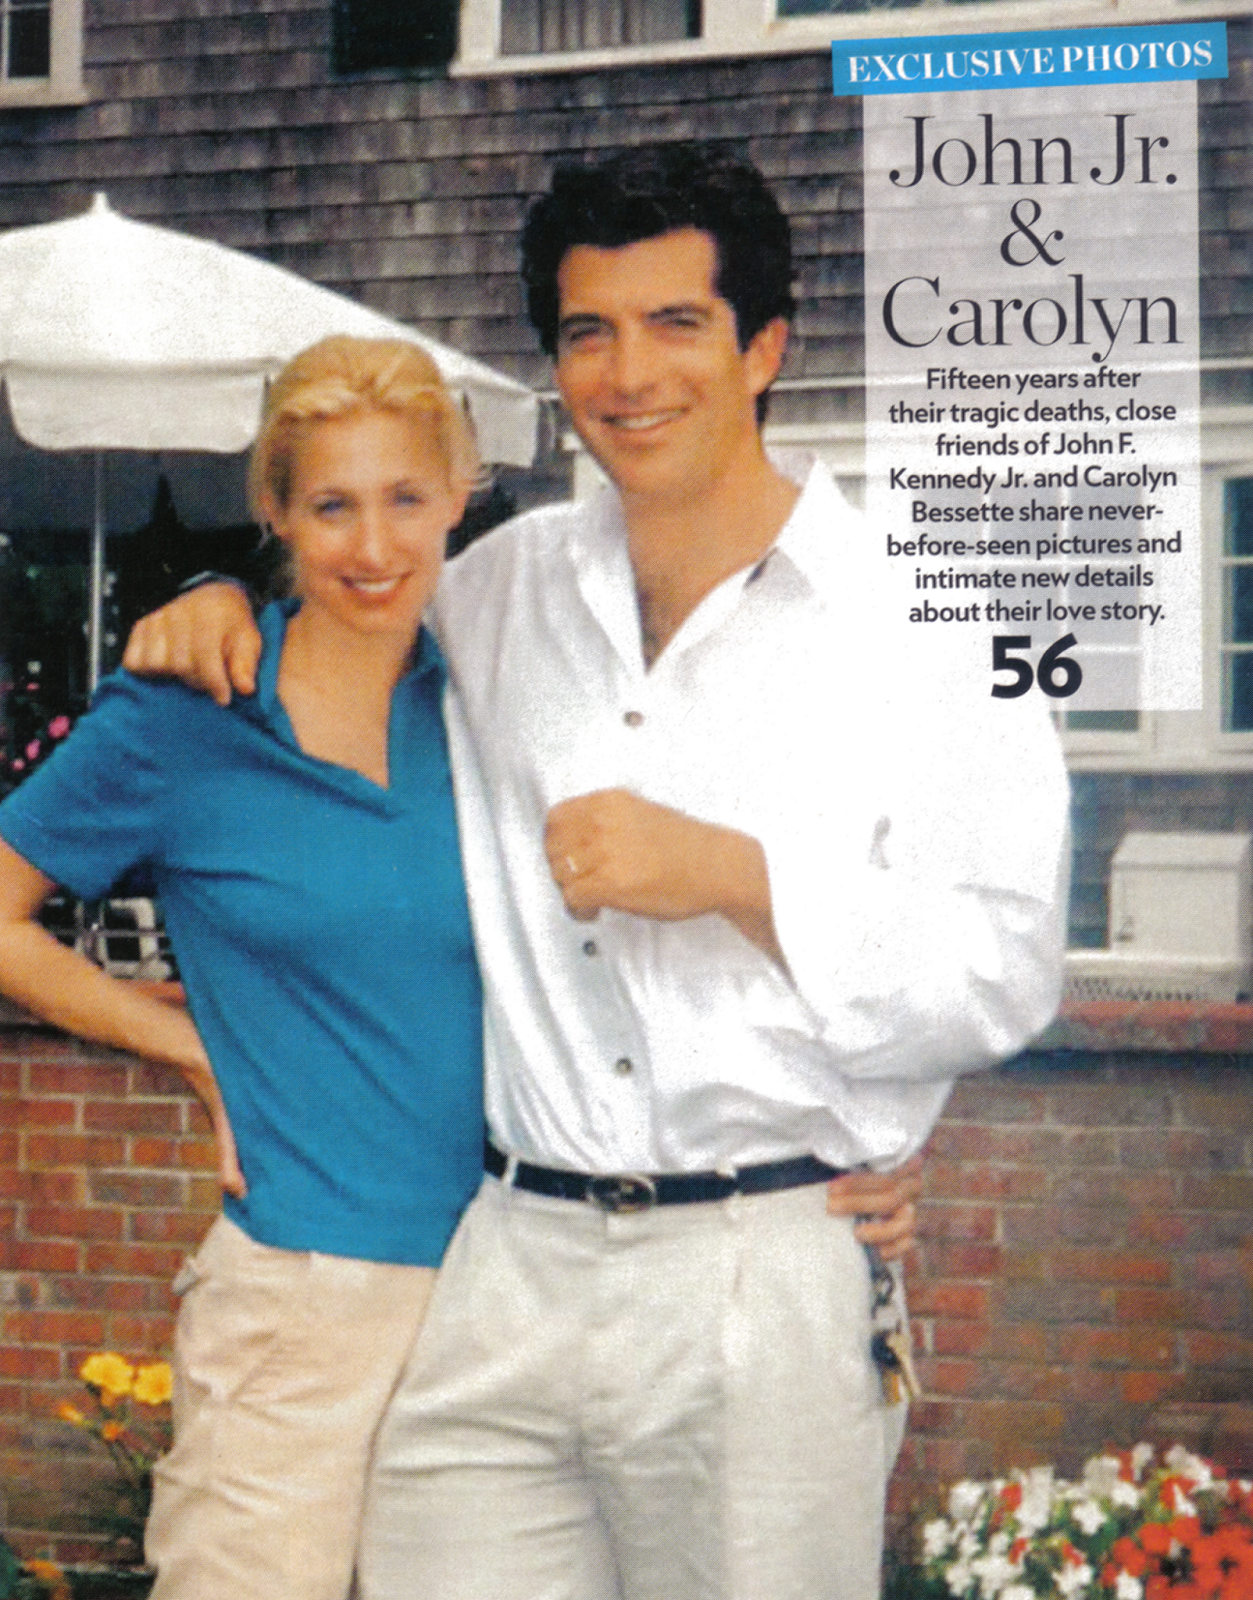 On A Style Note, I Always Loved Her Hyannis Uniform Of Khakis And Polos  John Kennedy Jrcarolyn Bessette